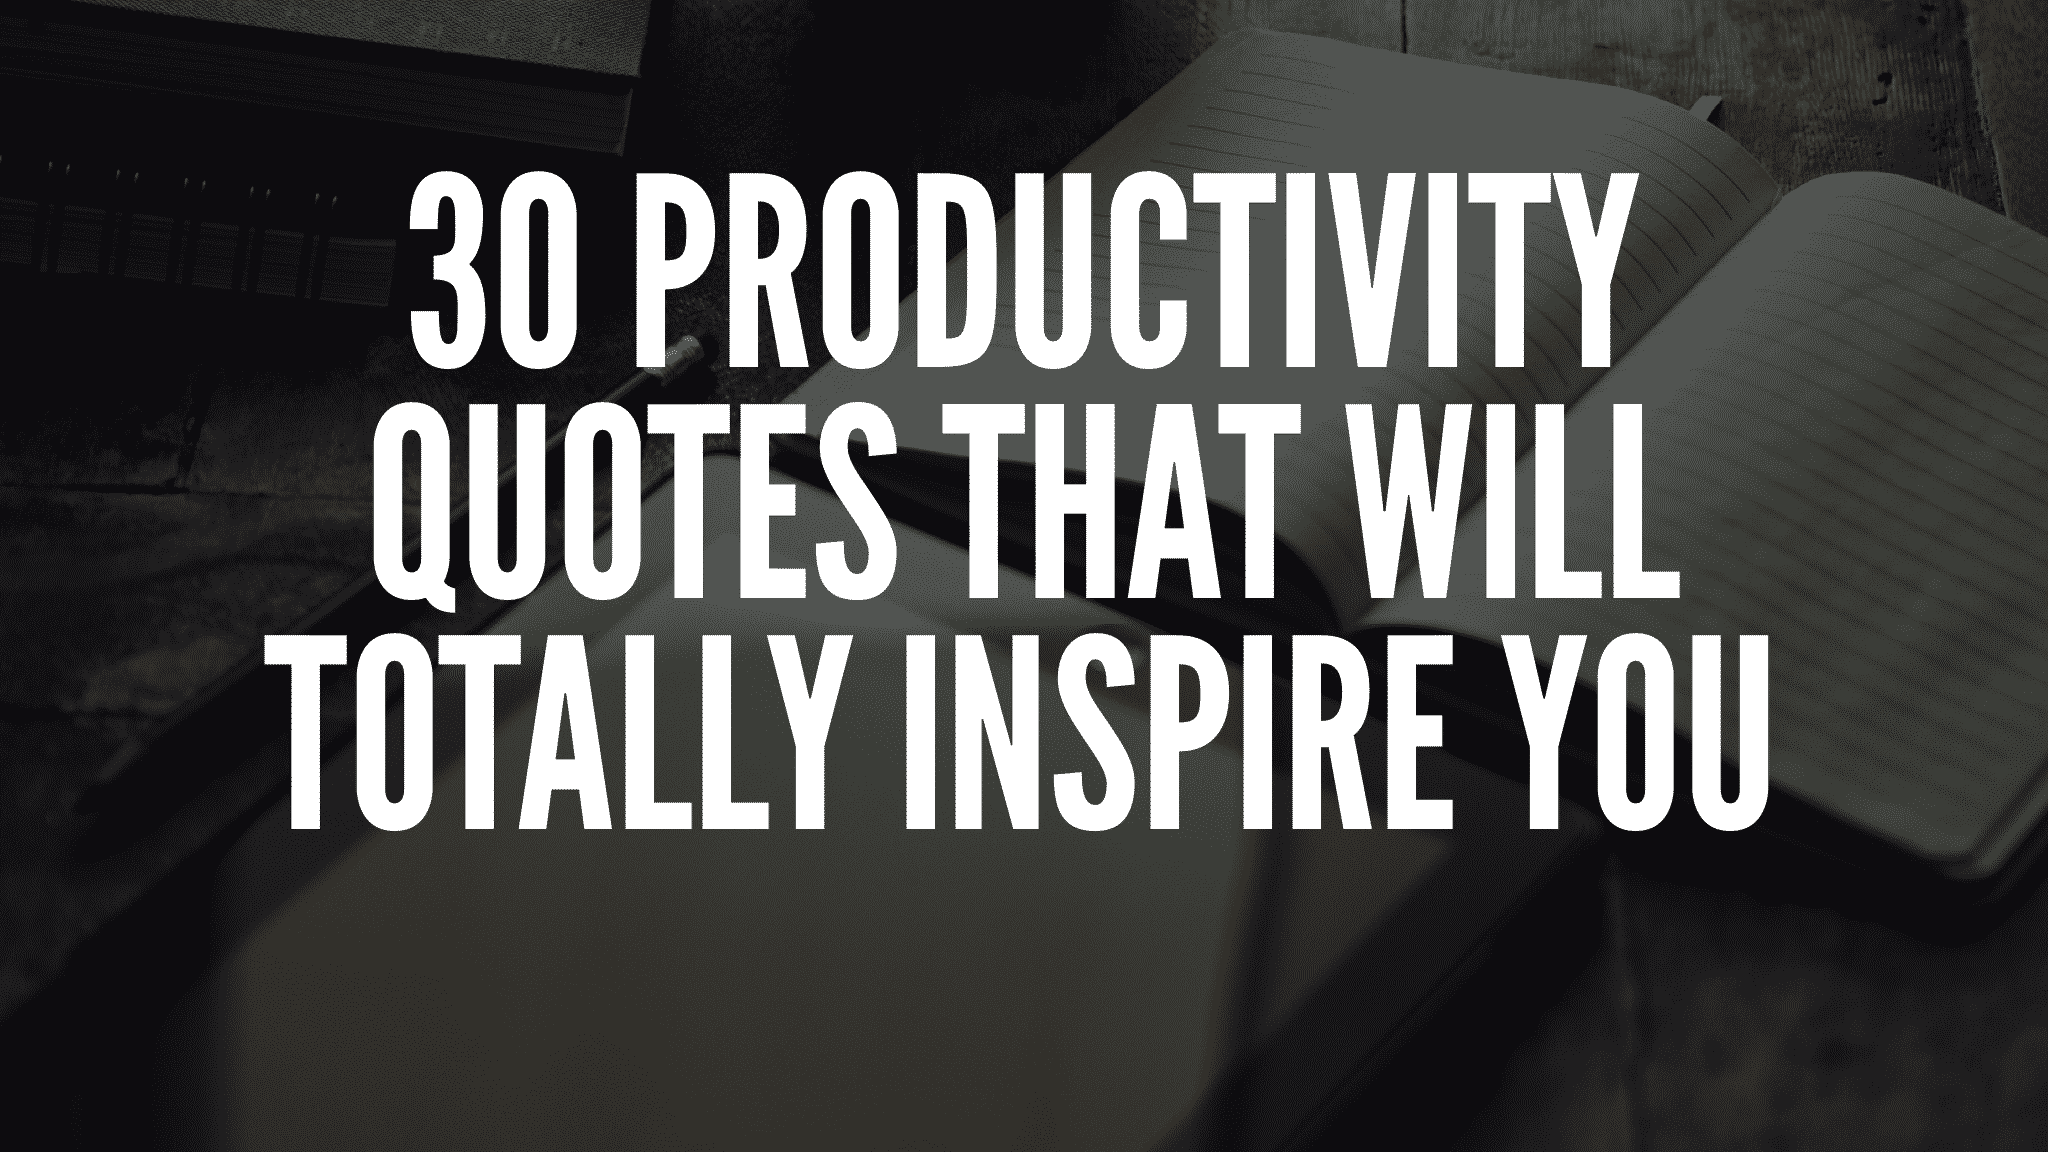 30 Productivity Quotes That Will Totally Inspire You